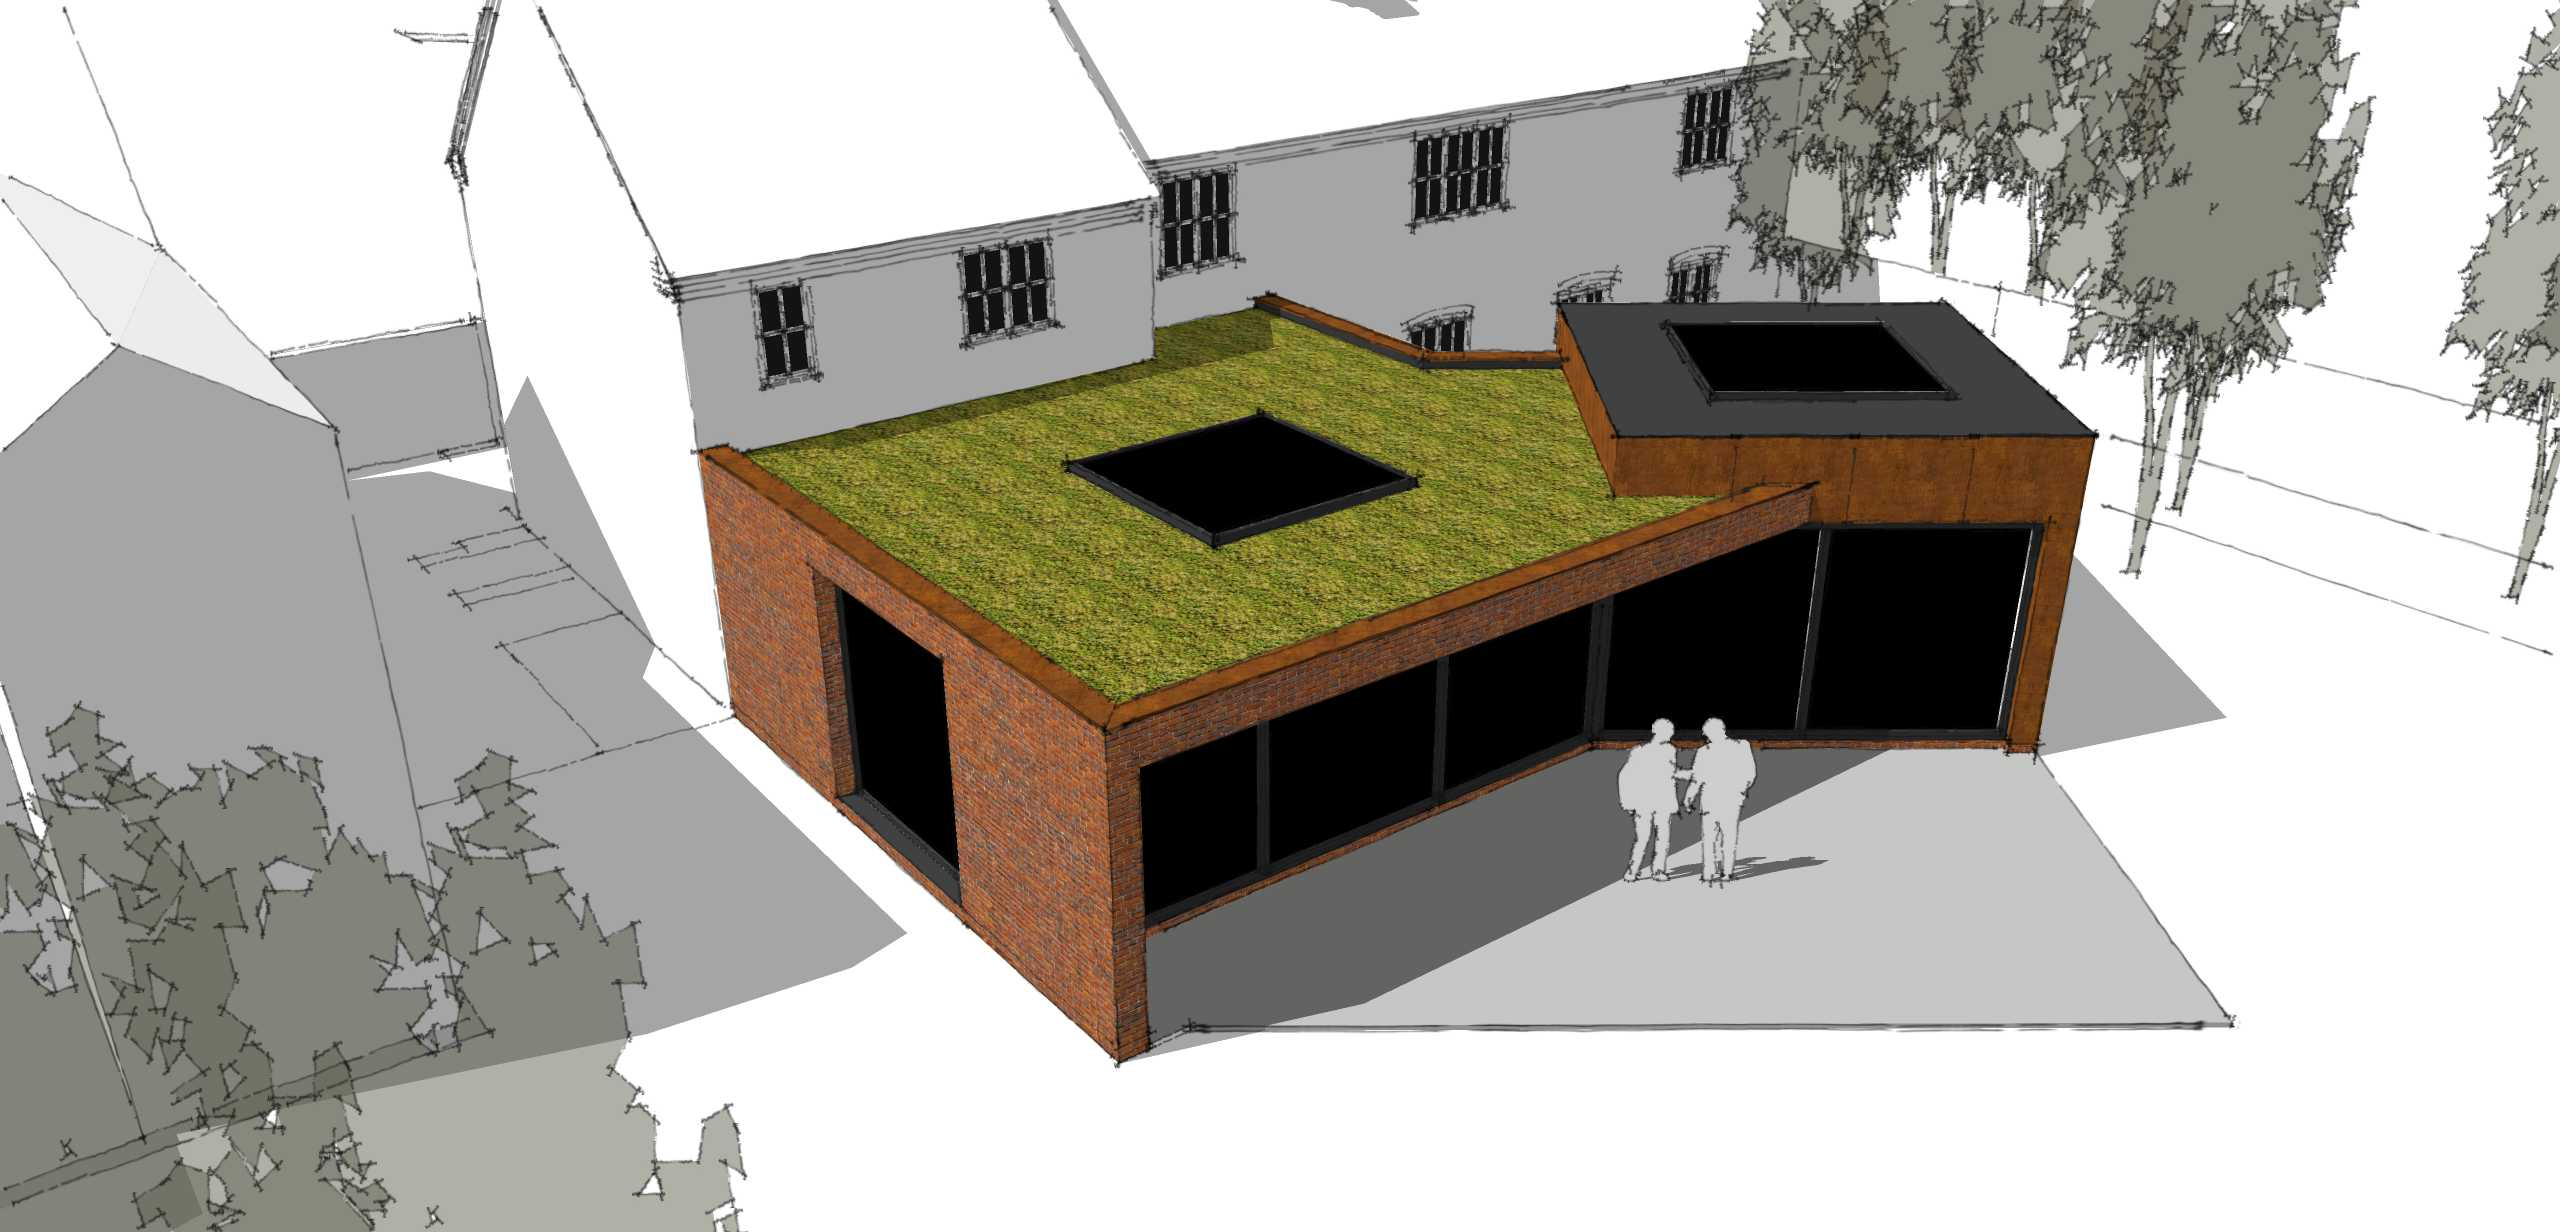 Planning Approval for Interlocking Cube Extension…